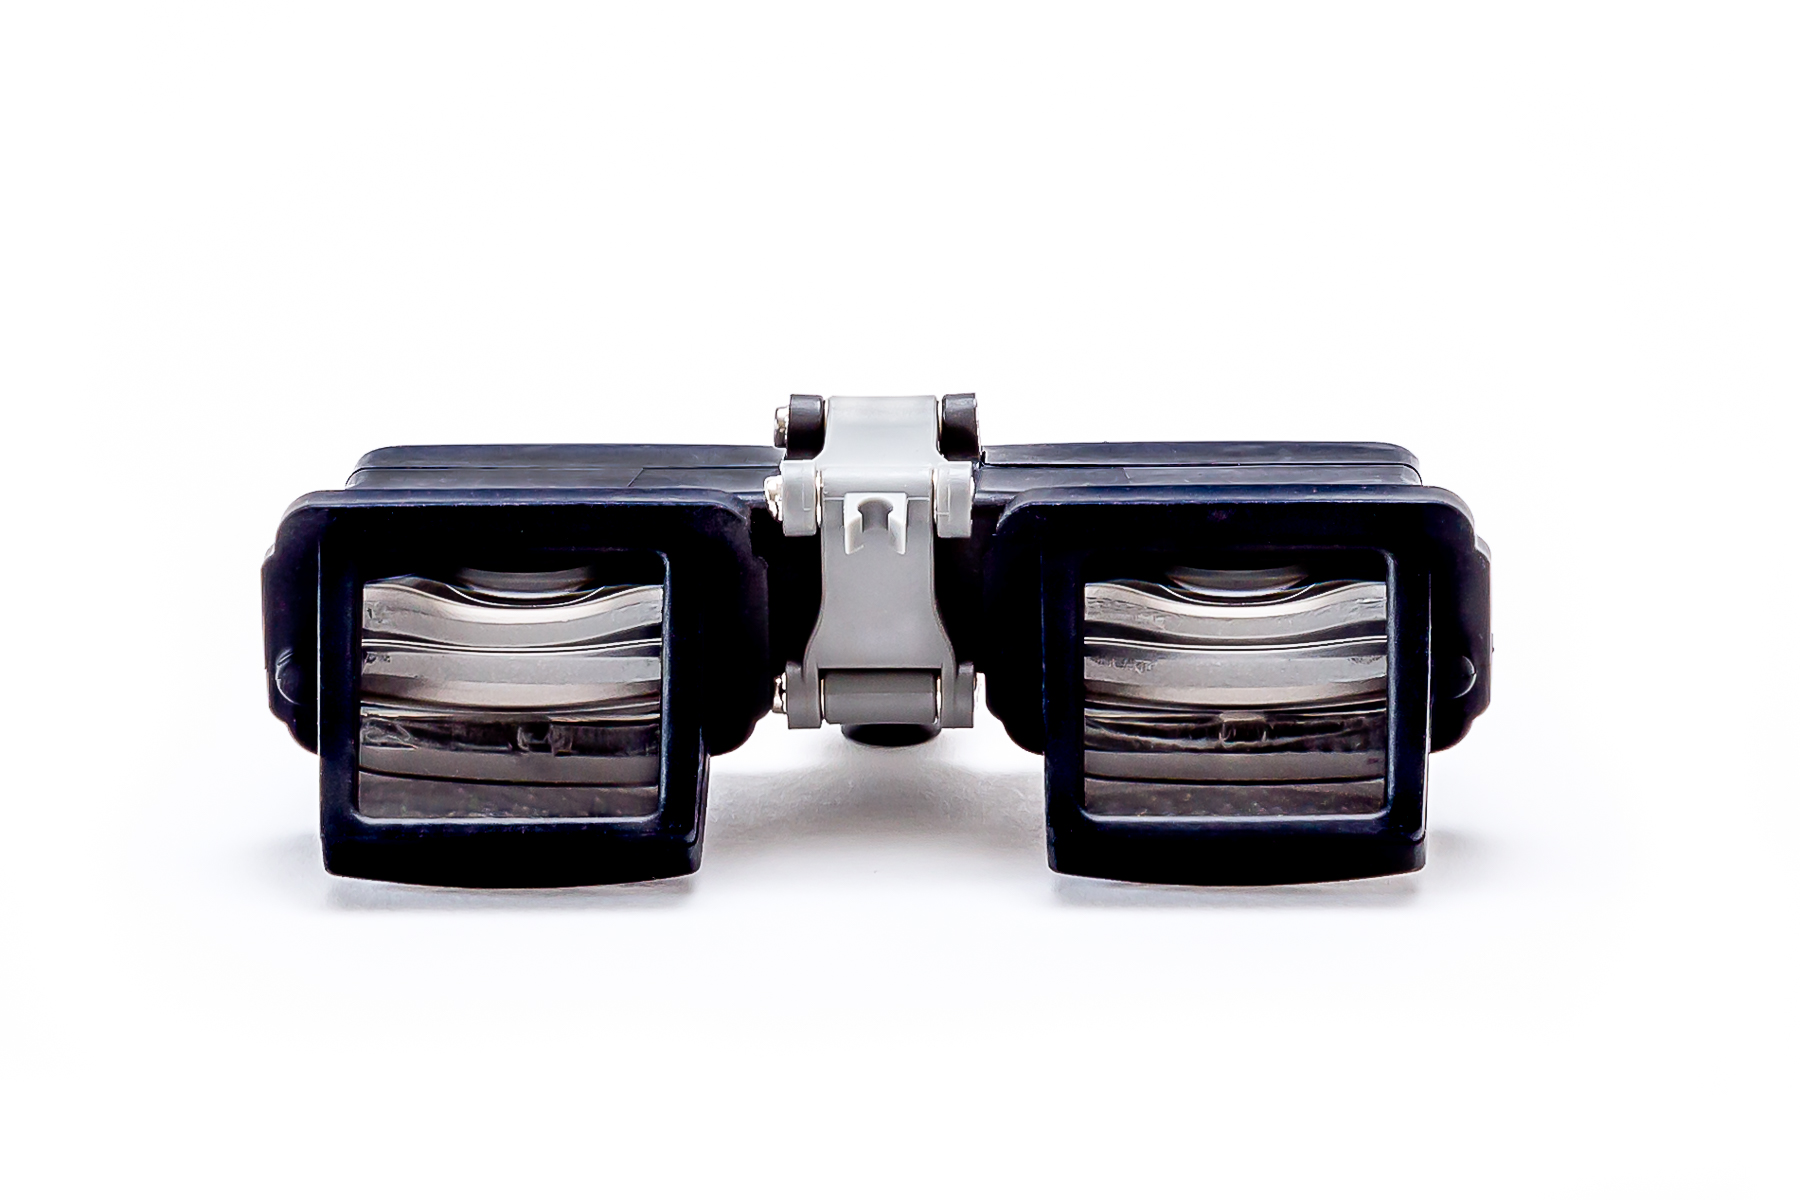 Insite® 3B Goggles   Projects ultrasound image into binocular-style headset.  Most commonly used in bovine reproduction, aquatics, wildlife